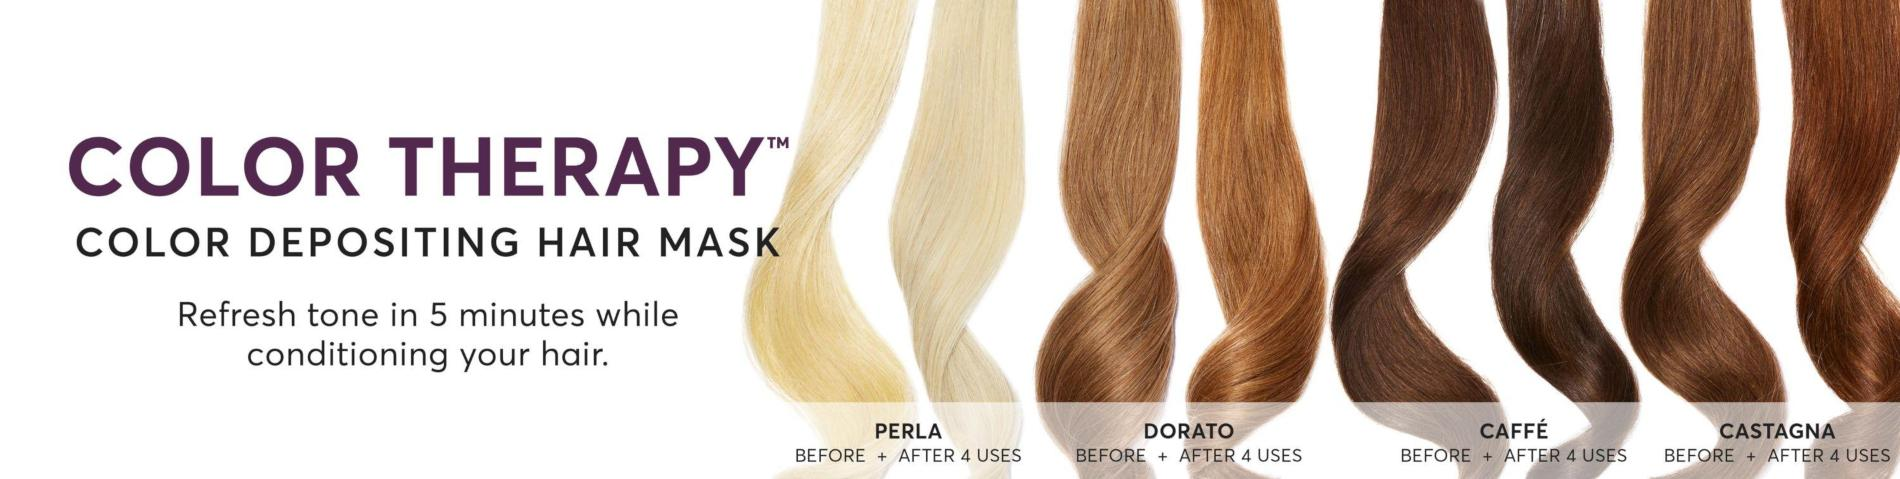 Color Therapy Color Depositing Hair Mask before and after shots